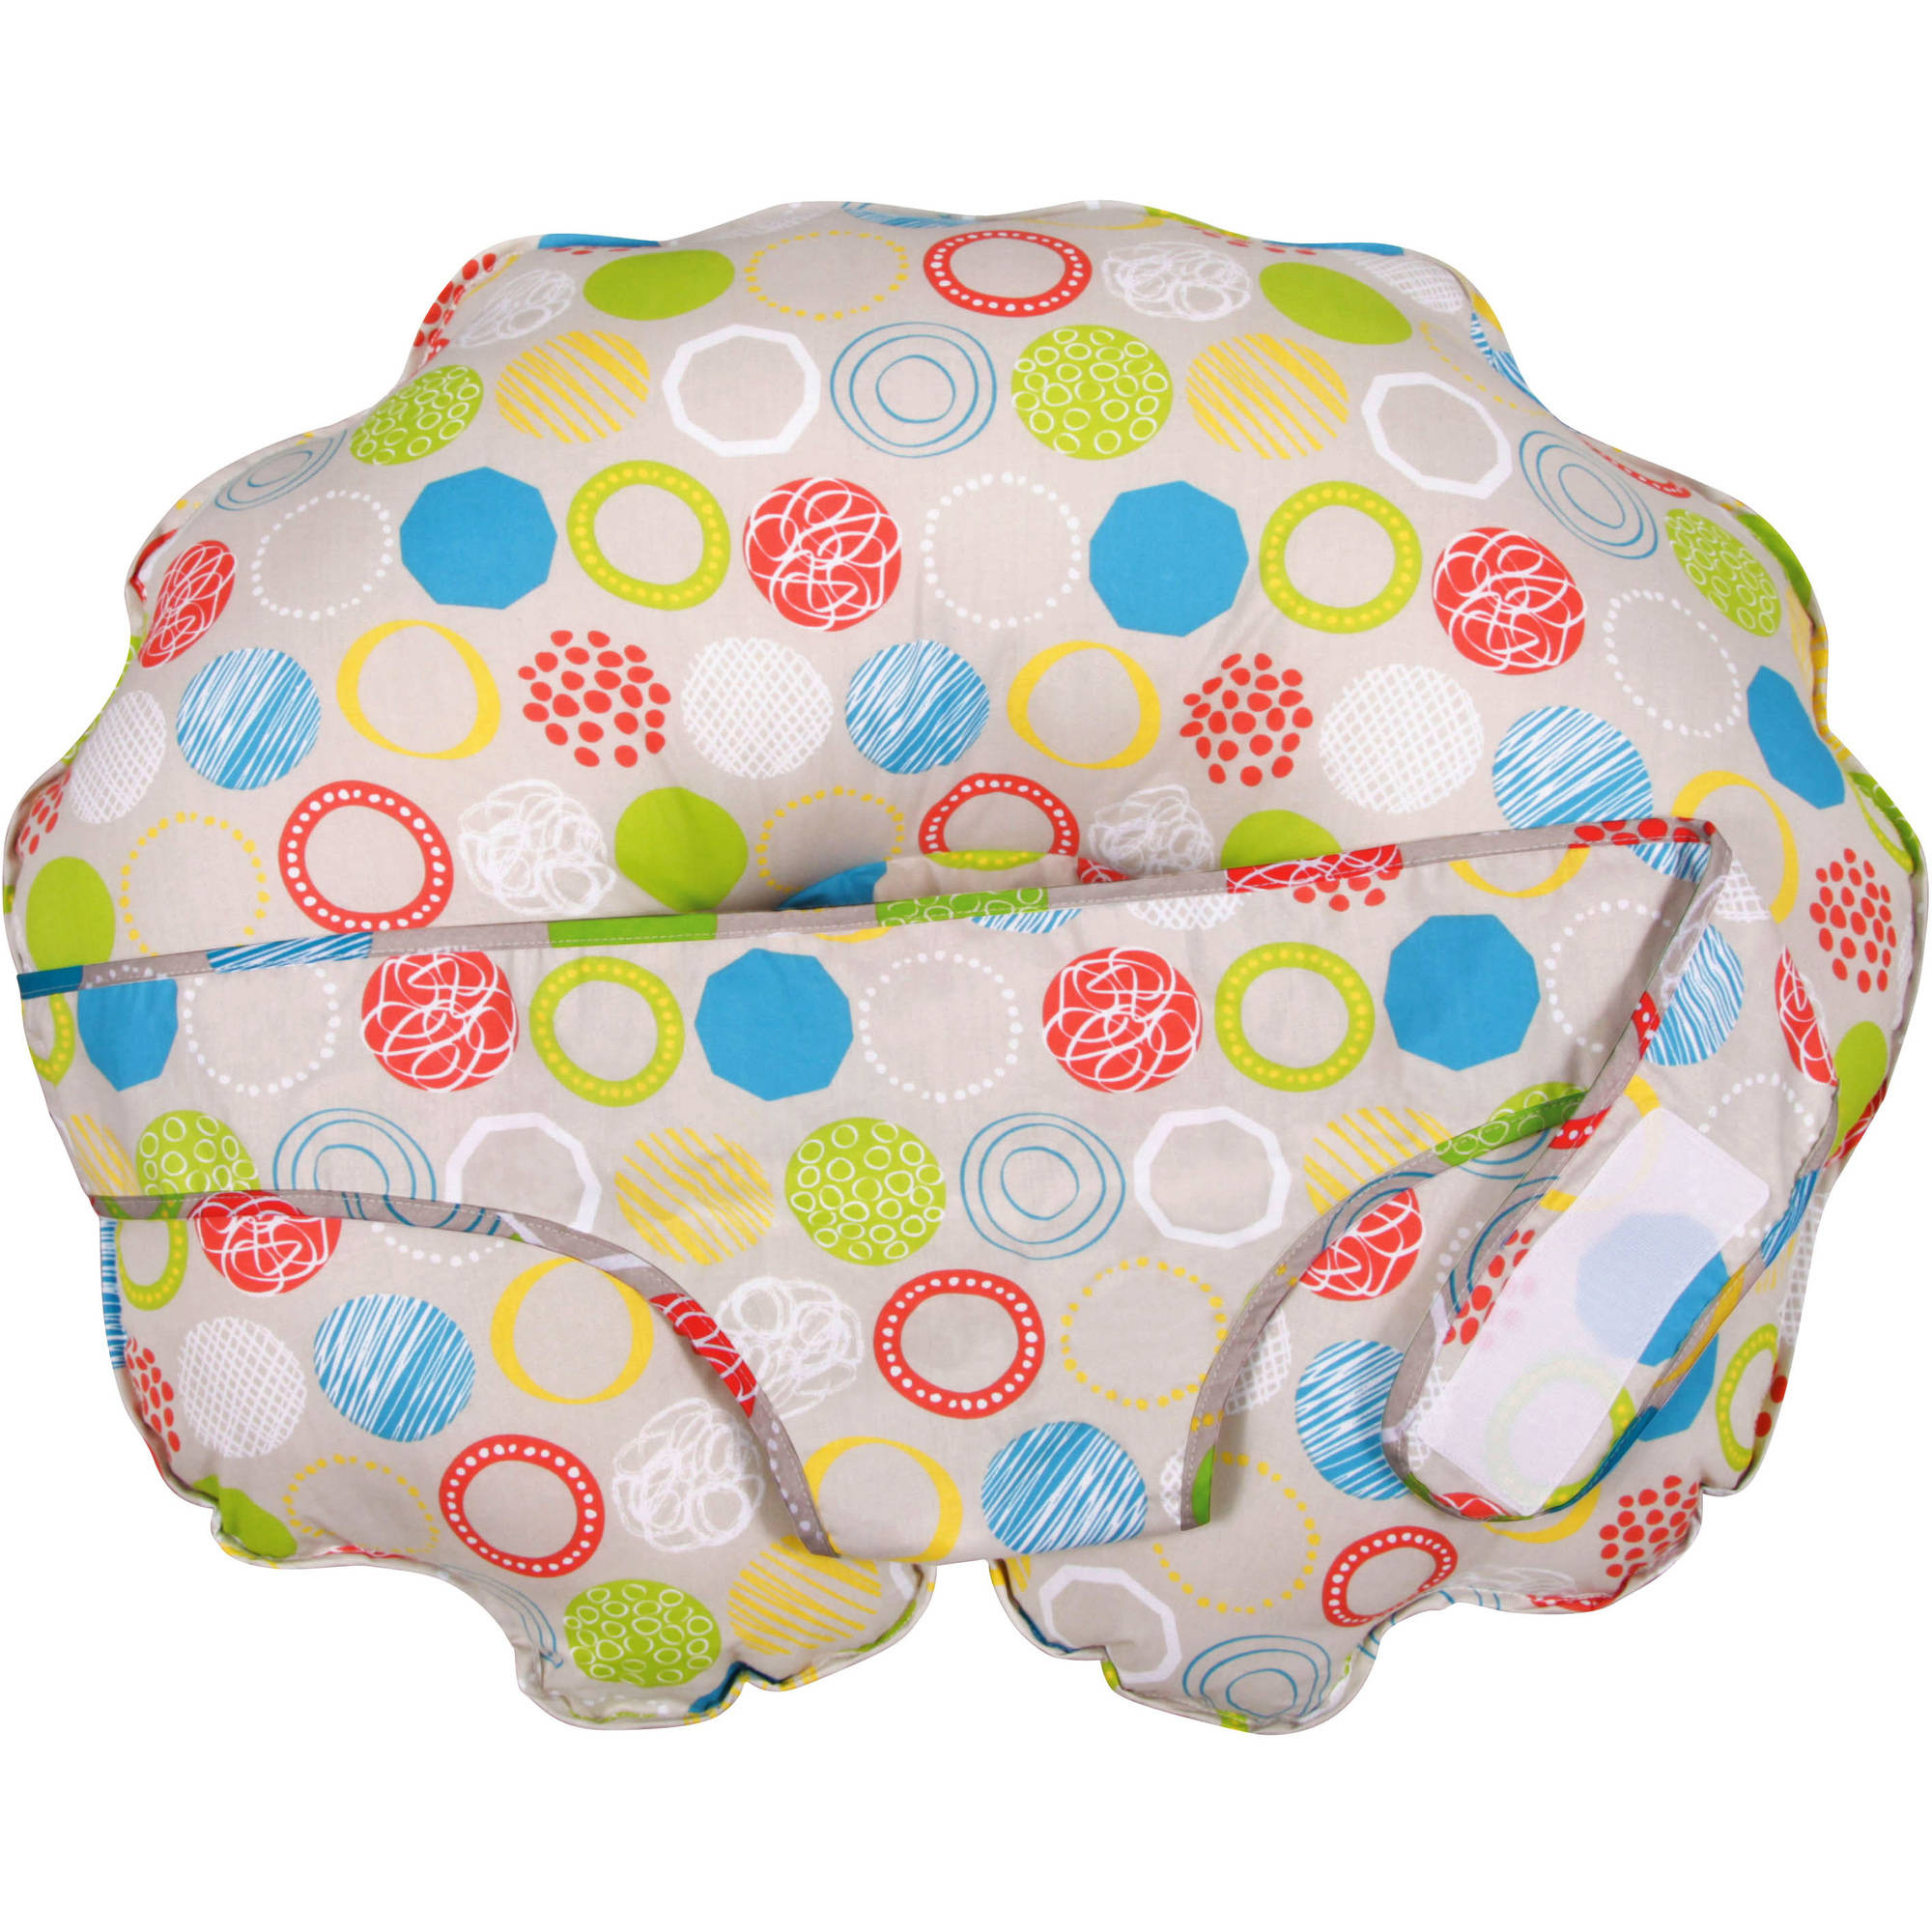 Leachco - Cuddle-U Nursing Pillow and More with Slipcover, Pop Tops